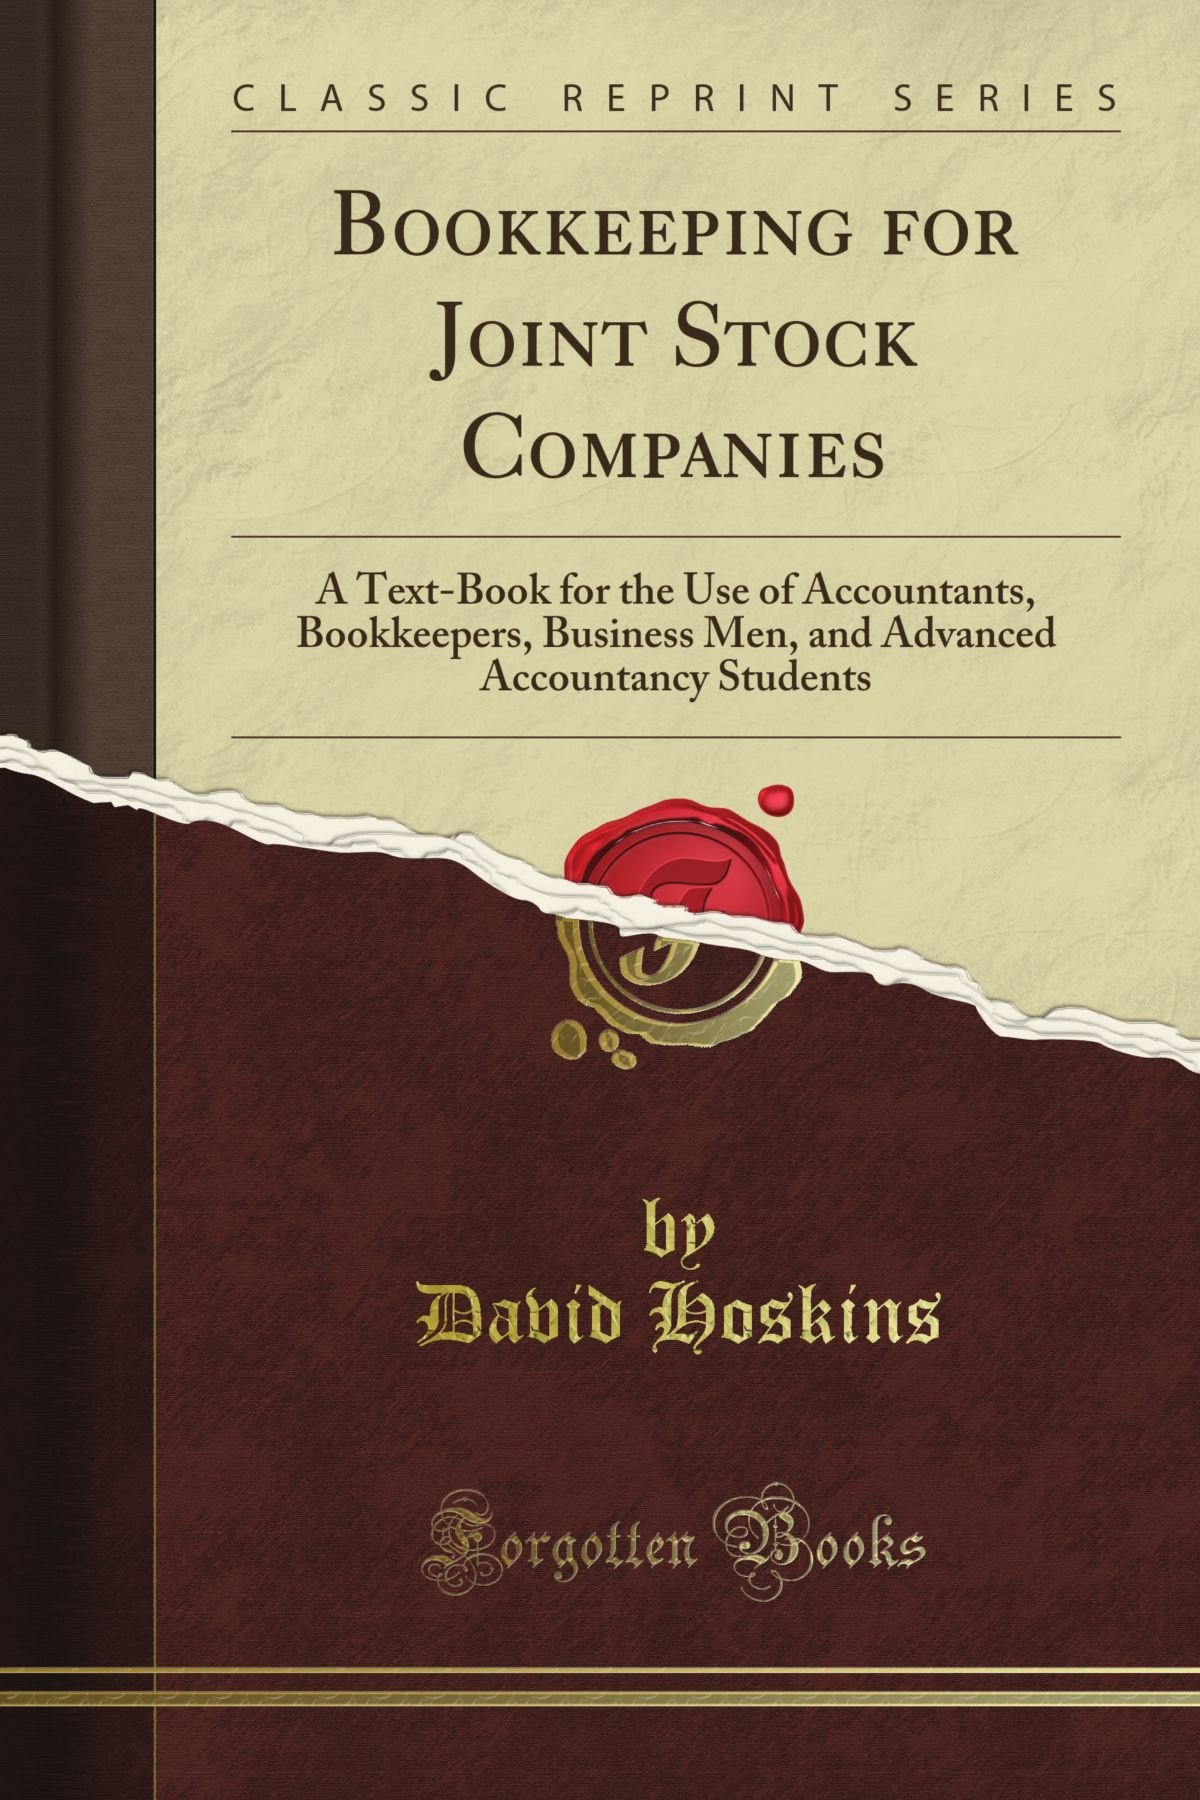 Download Bookkeeping for Joint Stock Companies: A Text-Book for the Use of Accountants, Bookkeepers, Business Men, and Advanced Accountancy Students (Classic Reprint) PDF